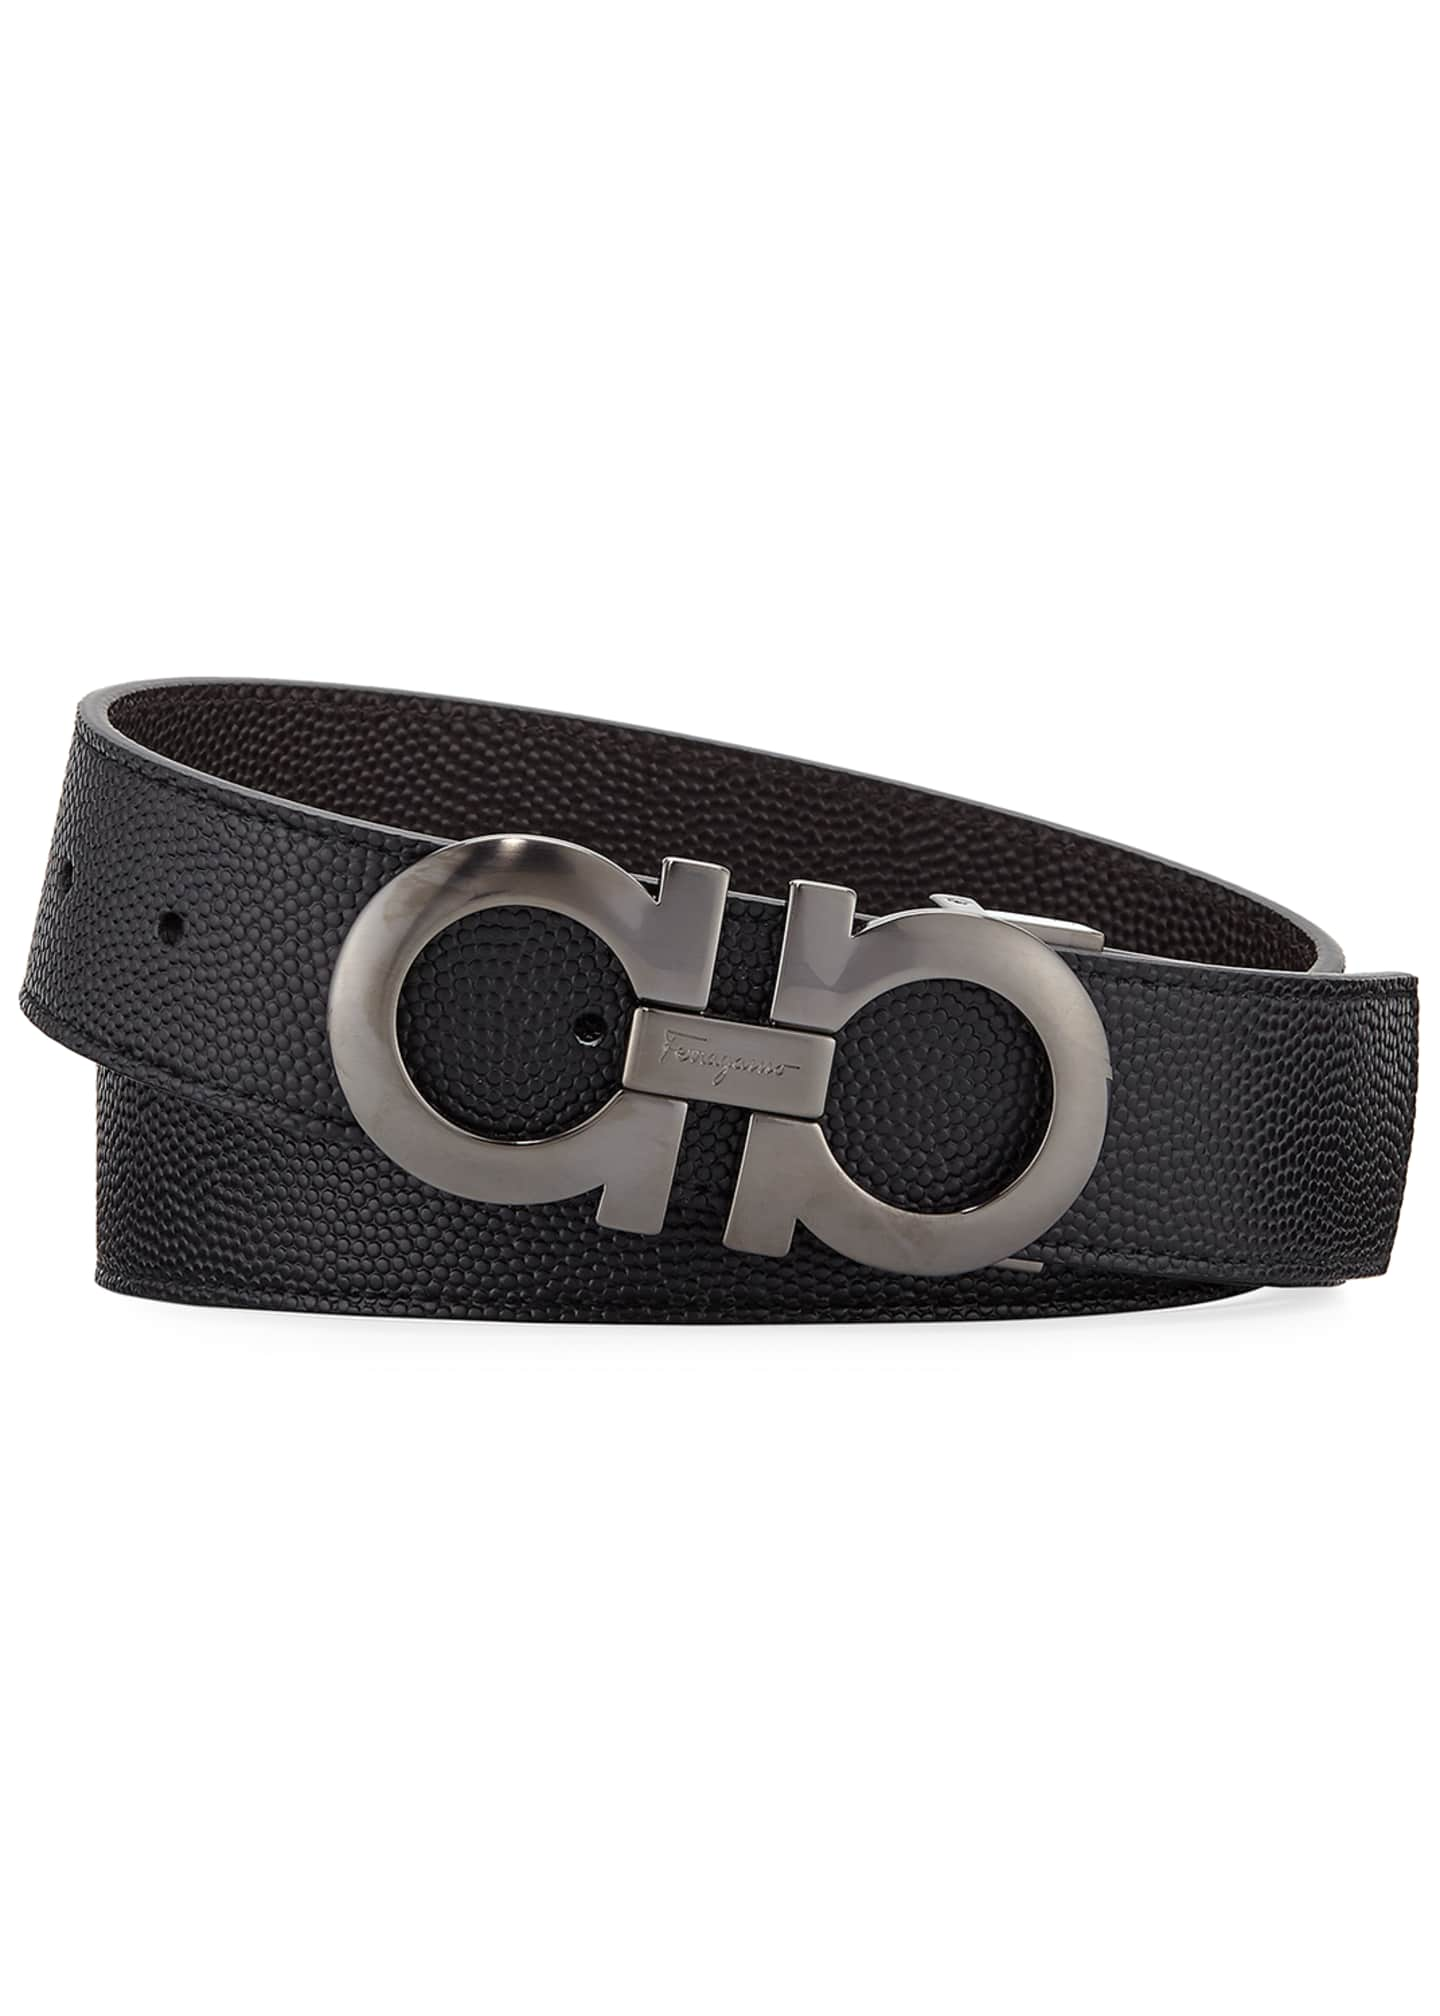 Image 1 of 1: Men's Double-Gancio Stamped Leather Belt